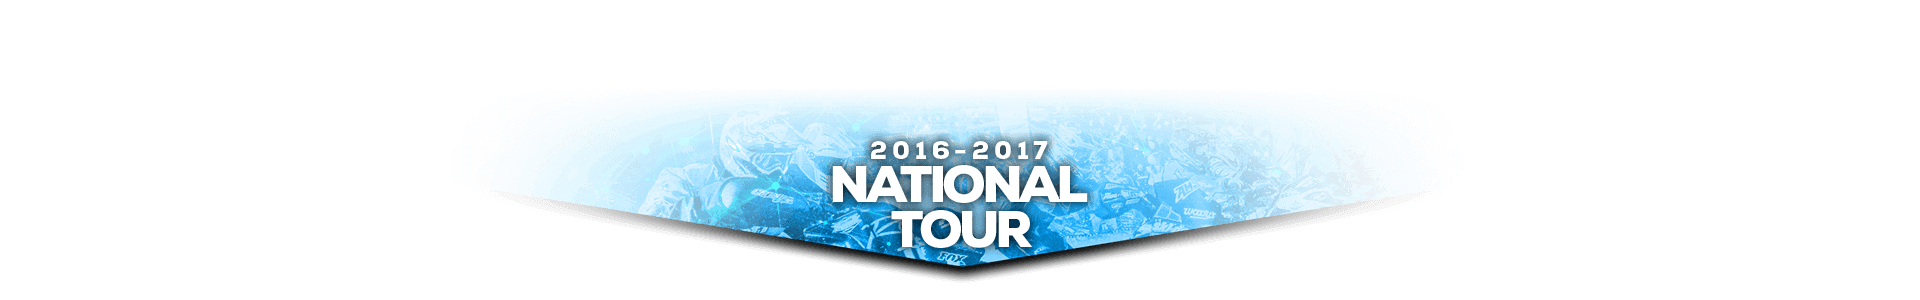 2016-2017 National Tour